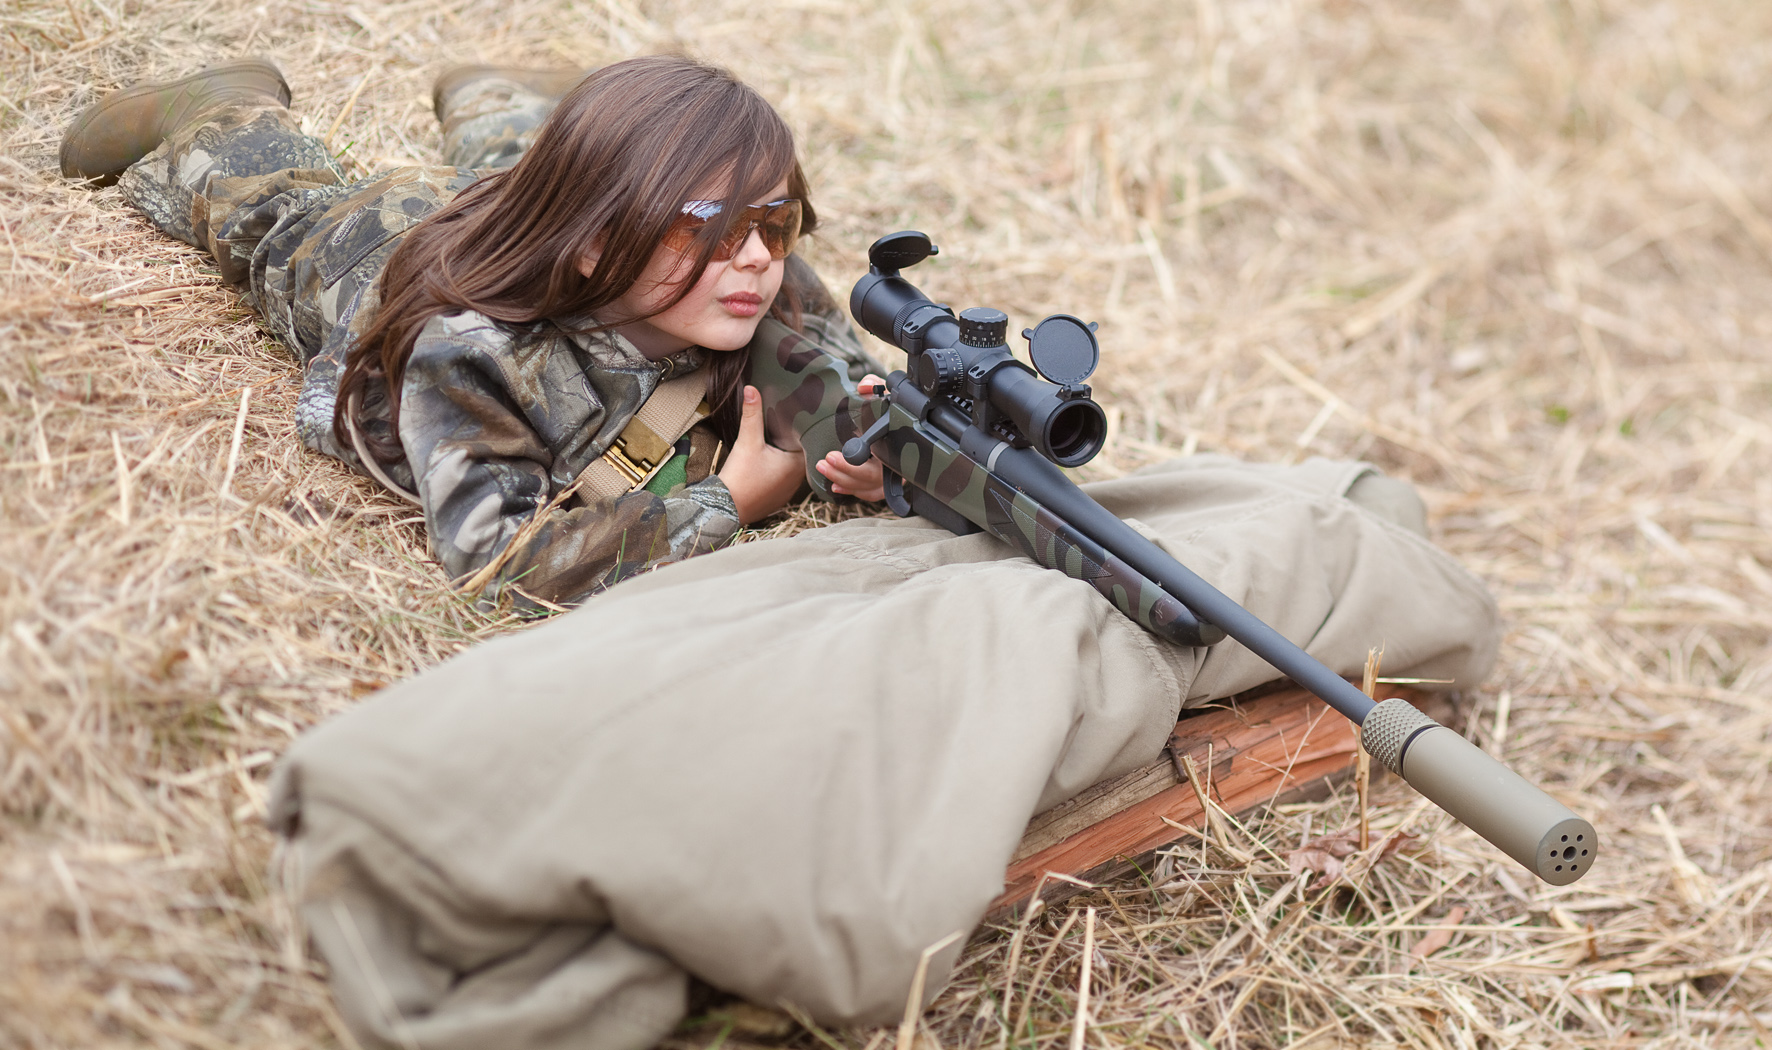 women army sniper wallpaper - photo #3